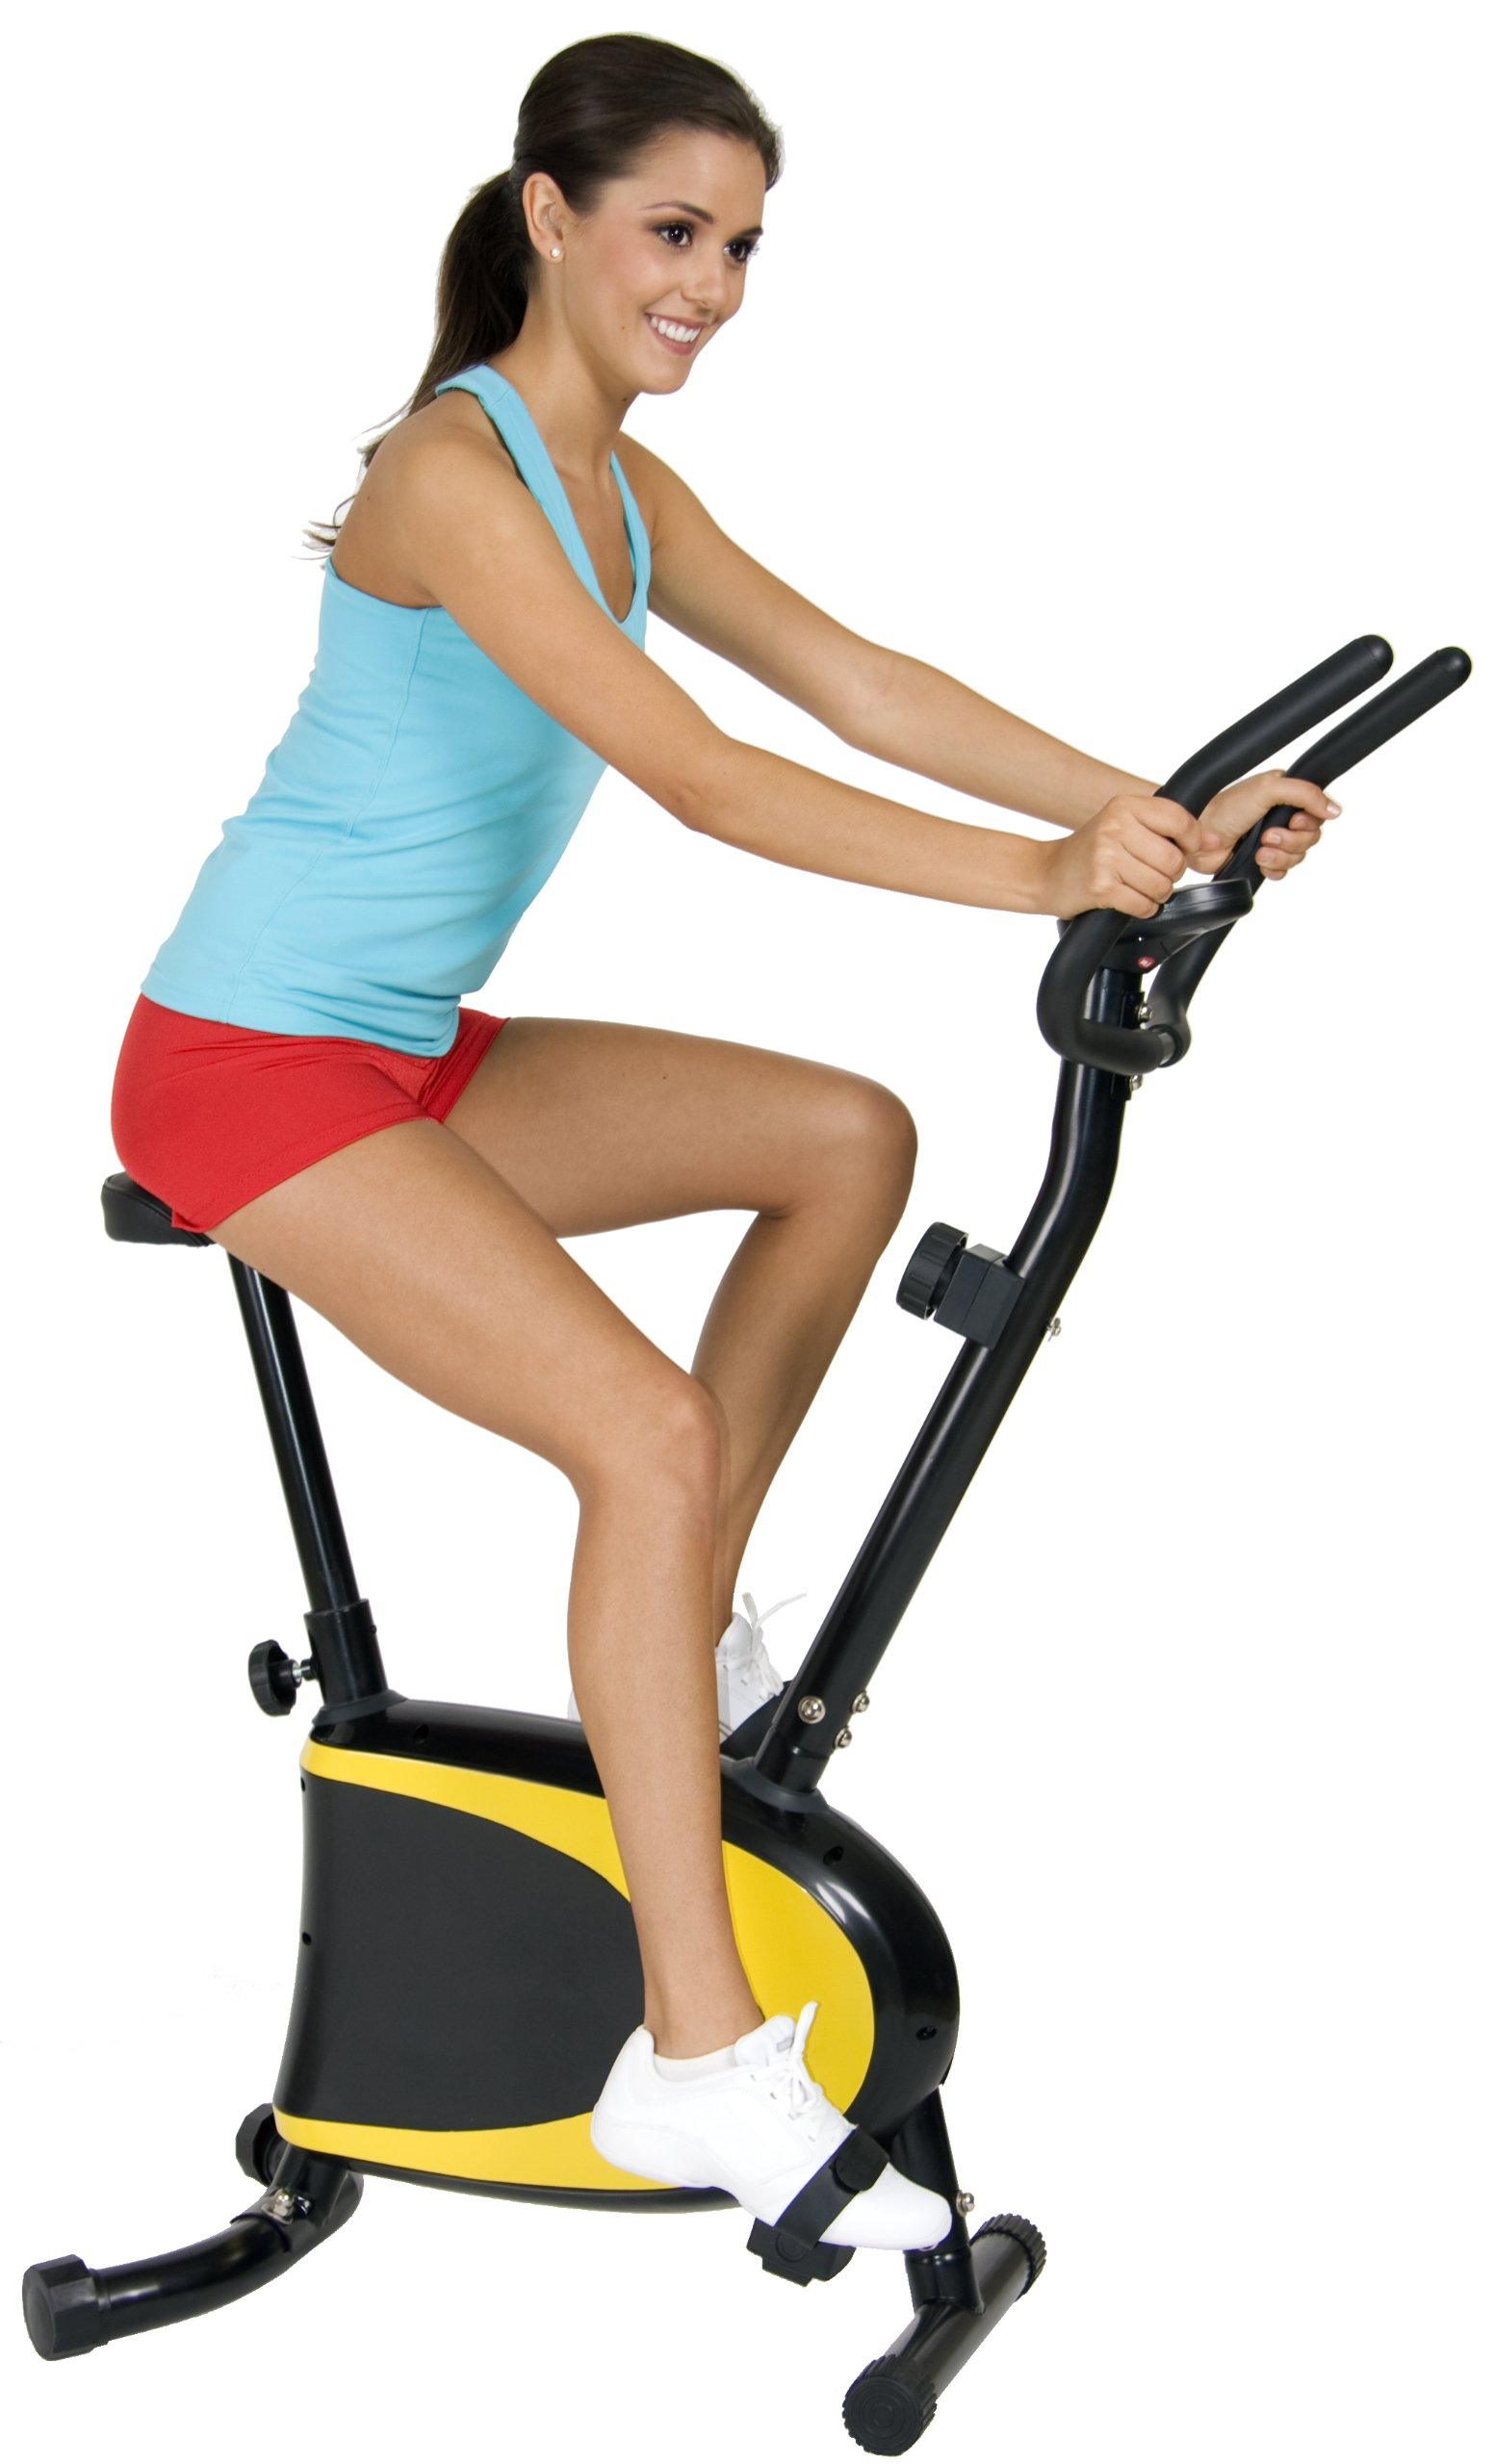 Body Champ Exercise Upright Bike with Heart Rate and Easy Computer/Adjustable Seat Stationary Workout Machine by Body Champ (Image #2)